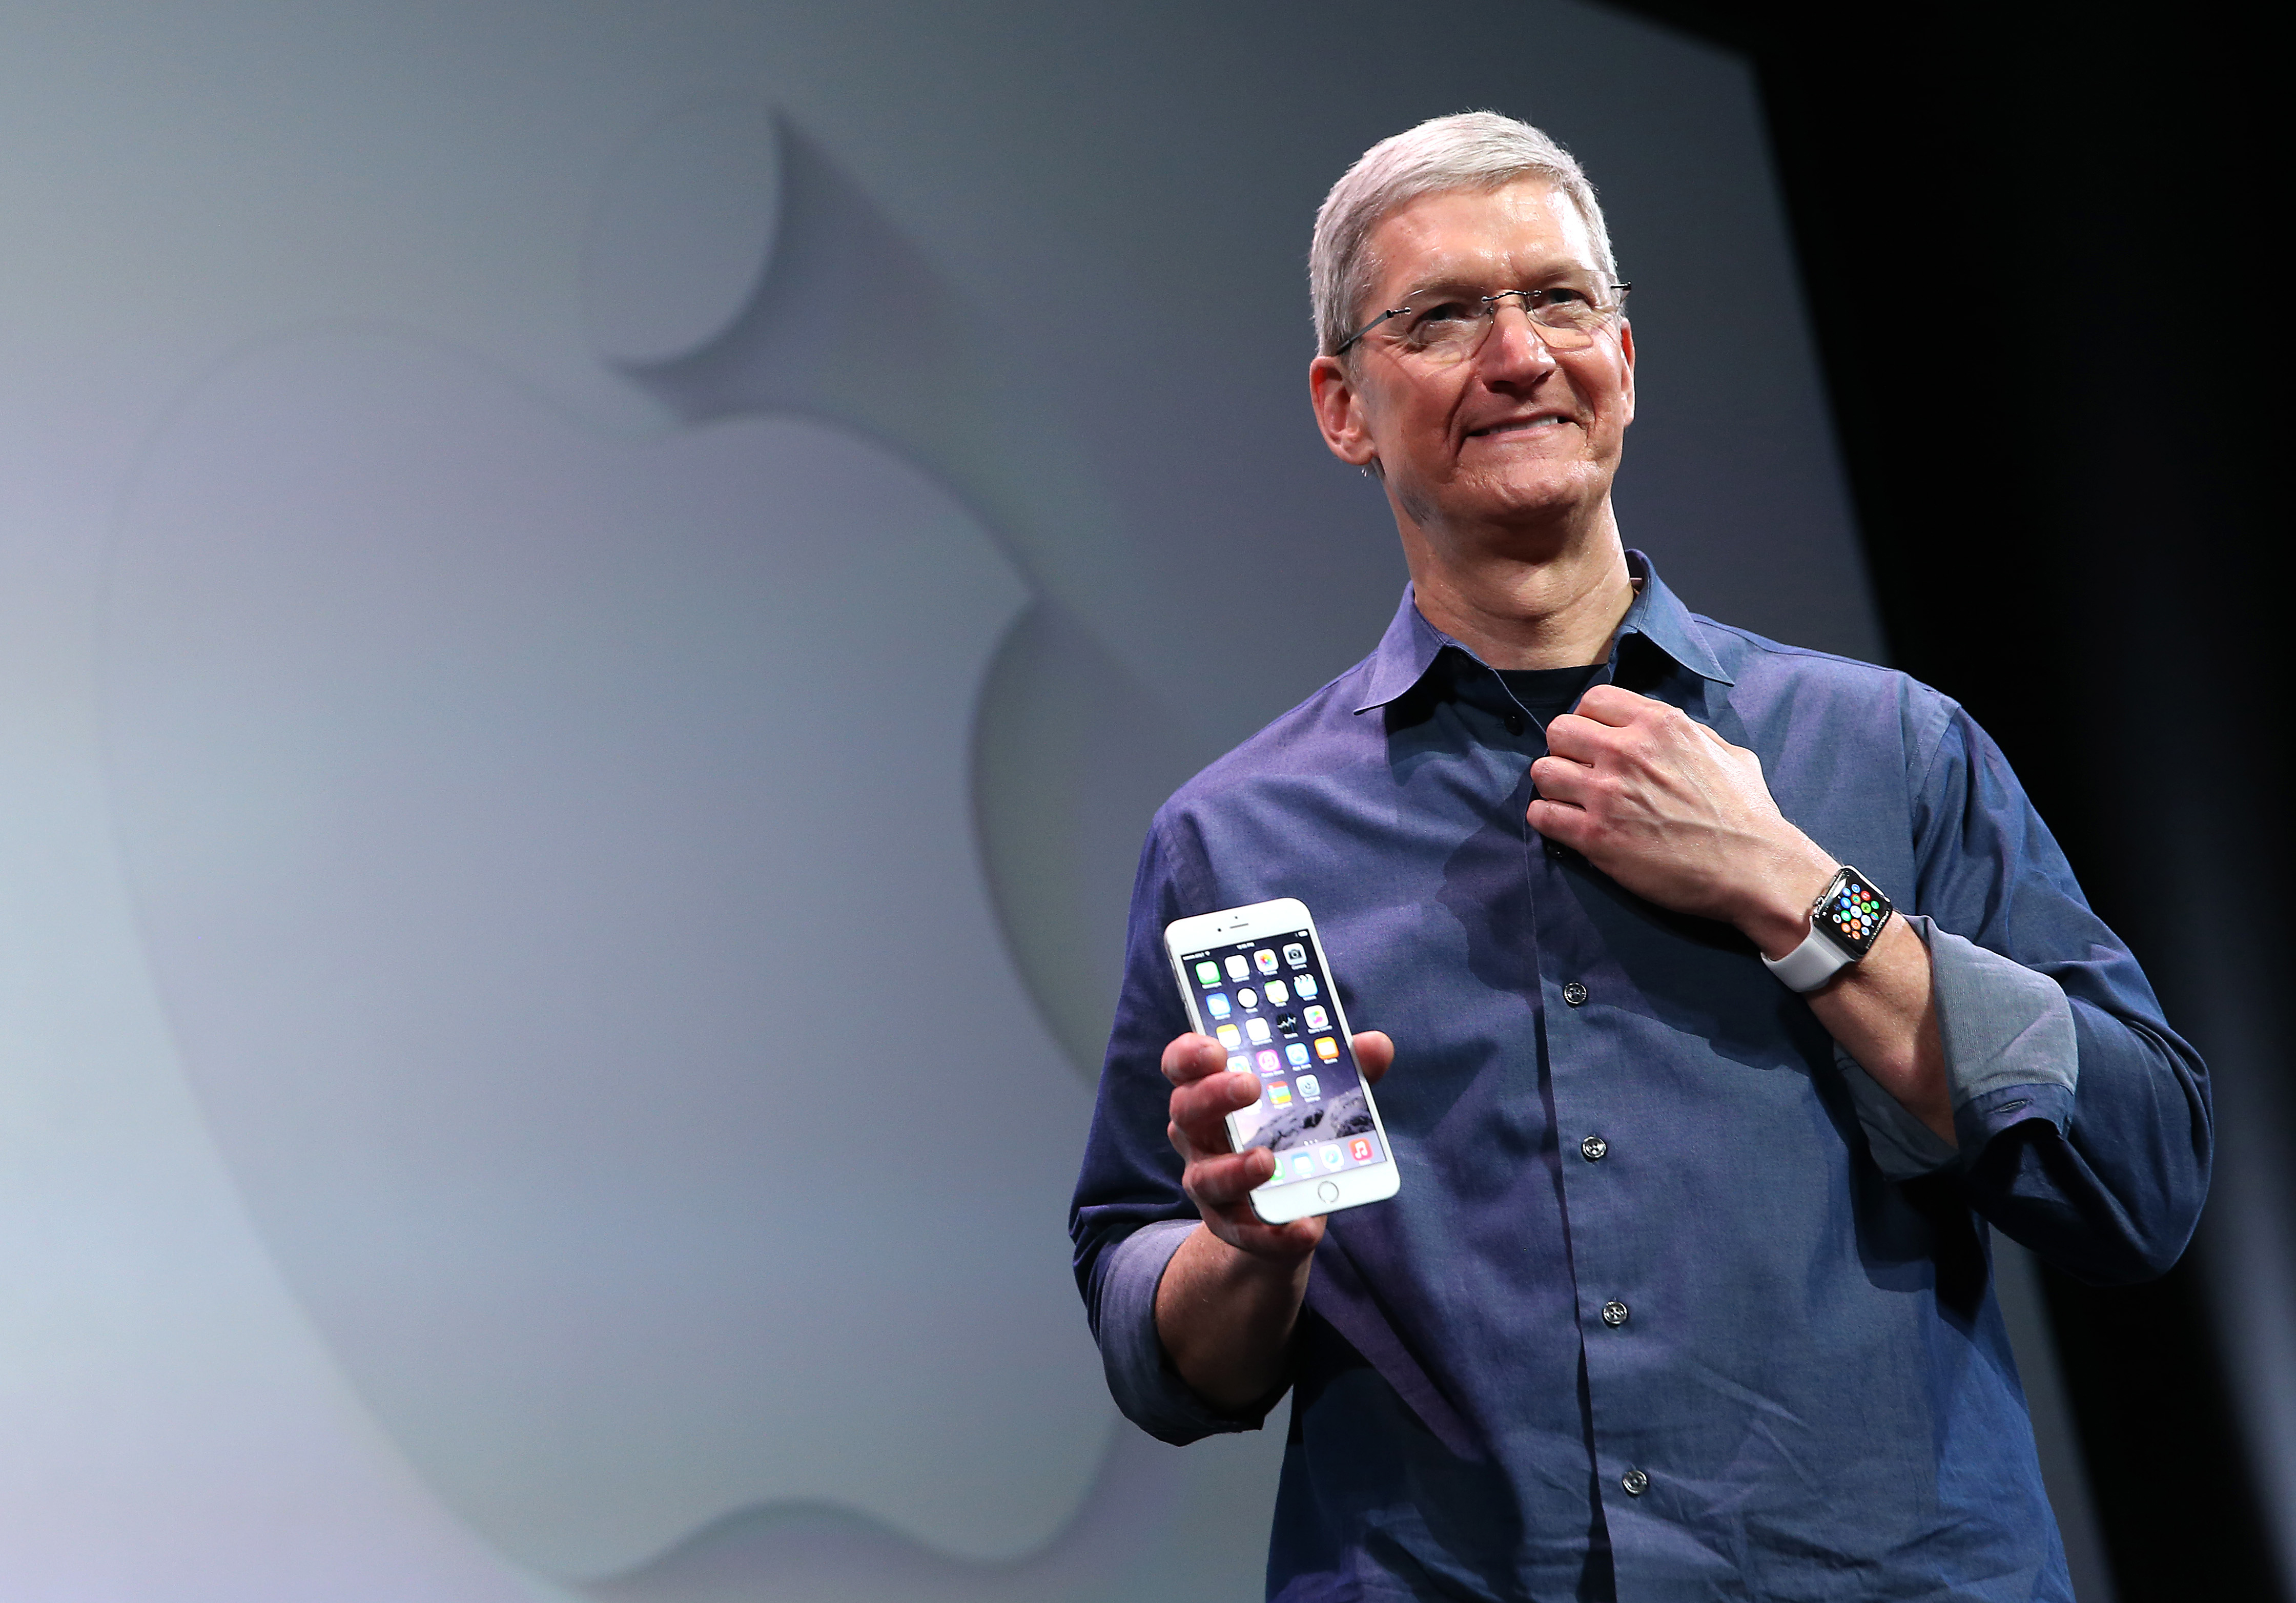 Apple CEO Tim Cook shows off the new iPhone 6 and the Apple Watch during an Apple special event at the Flint Center for the Performing Arts on September 9, 2014 in Cupertino, Calif.